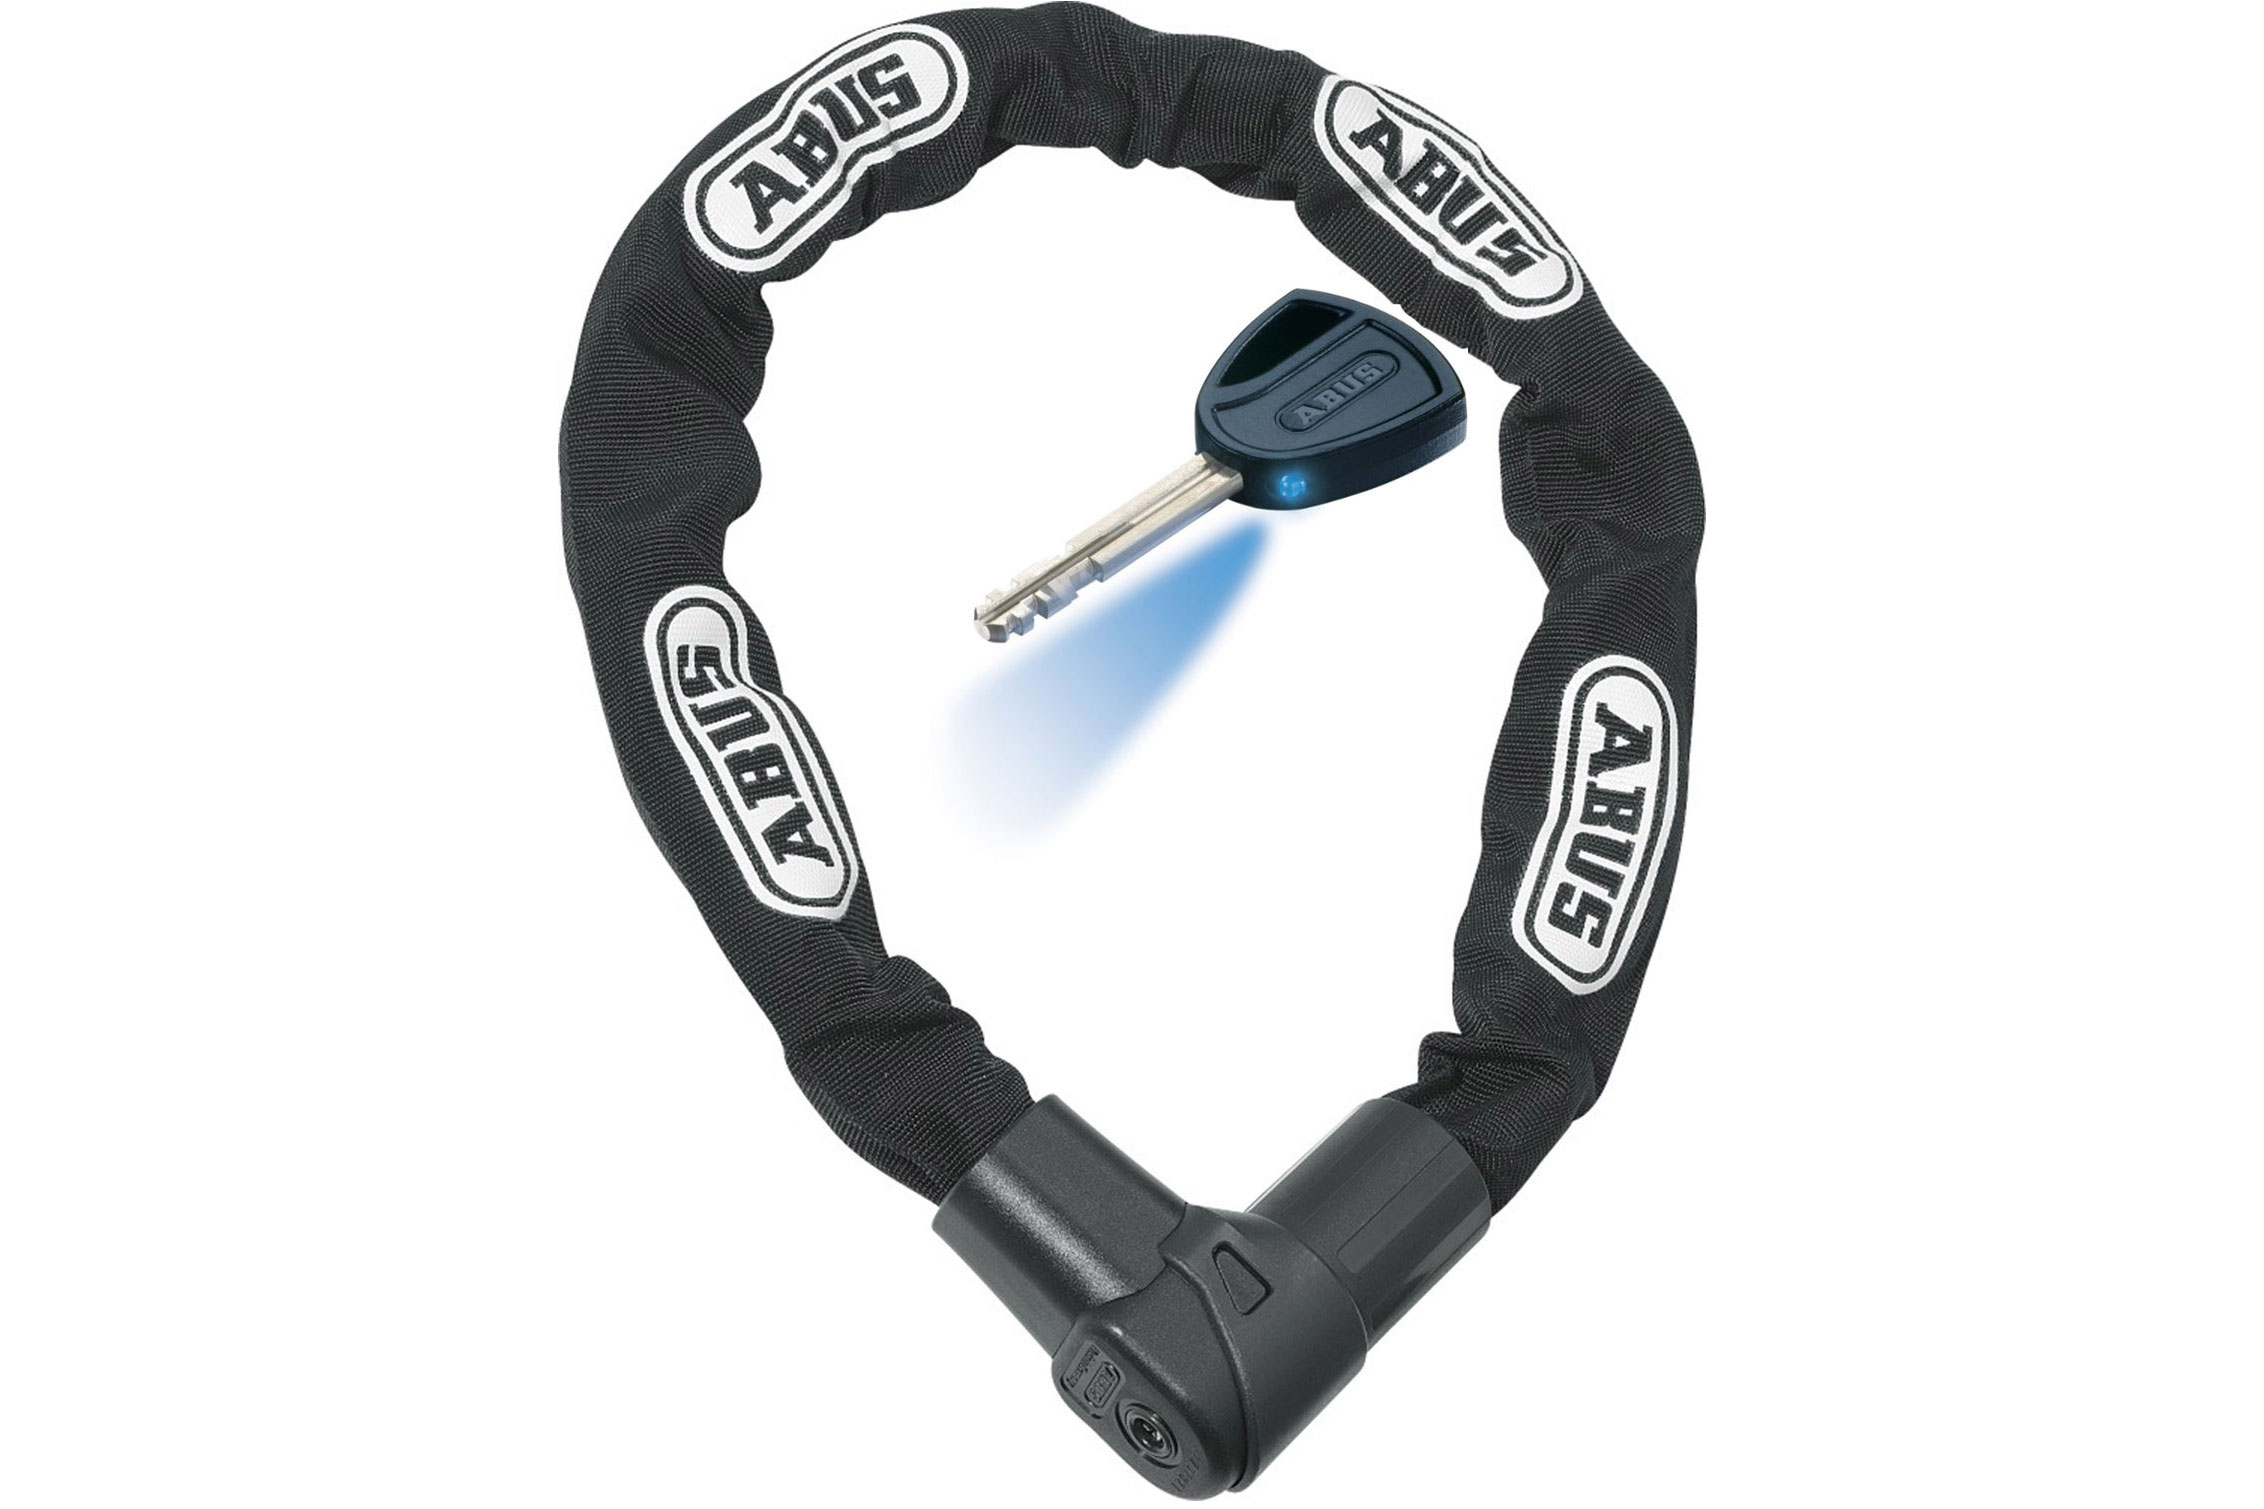 ABUS bike lock